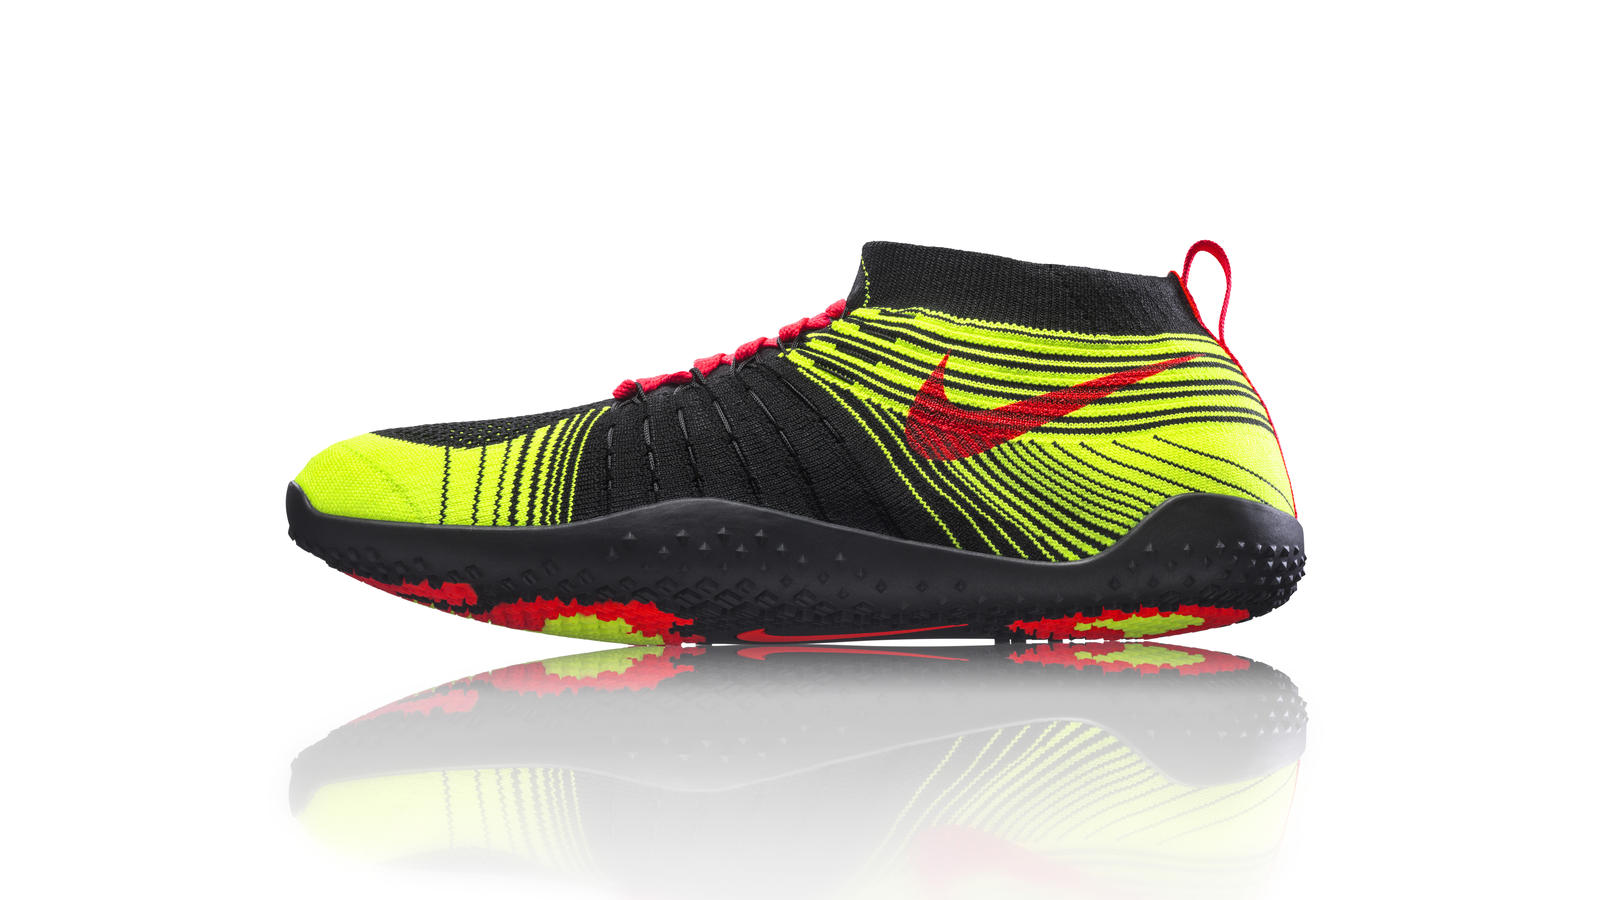 f0027812a82 New Nike Free Hyperfeel TR  Flyknit Engineered for High-Intensity ...